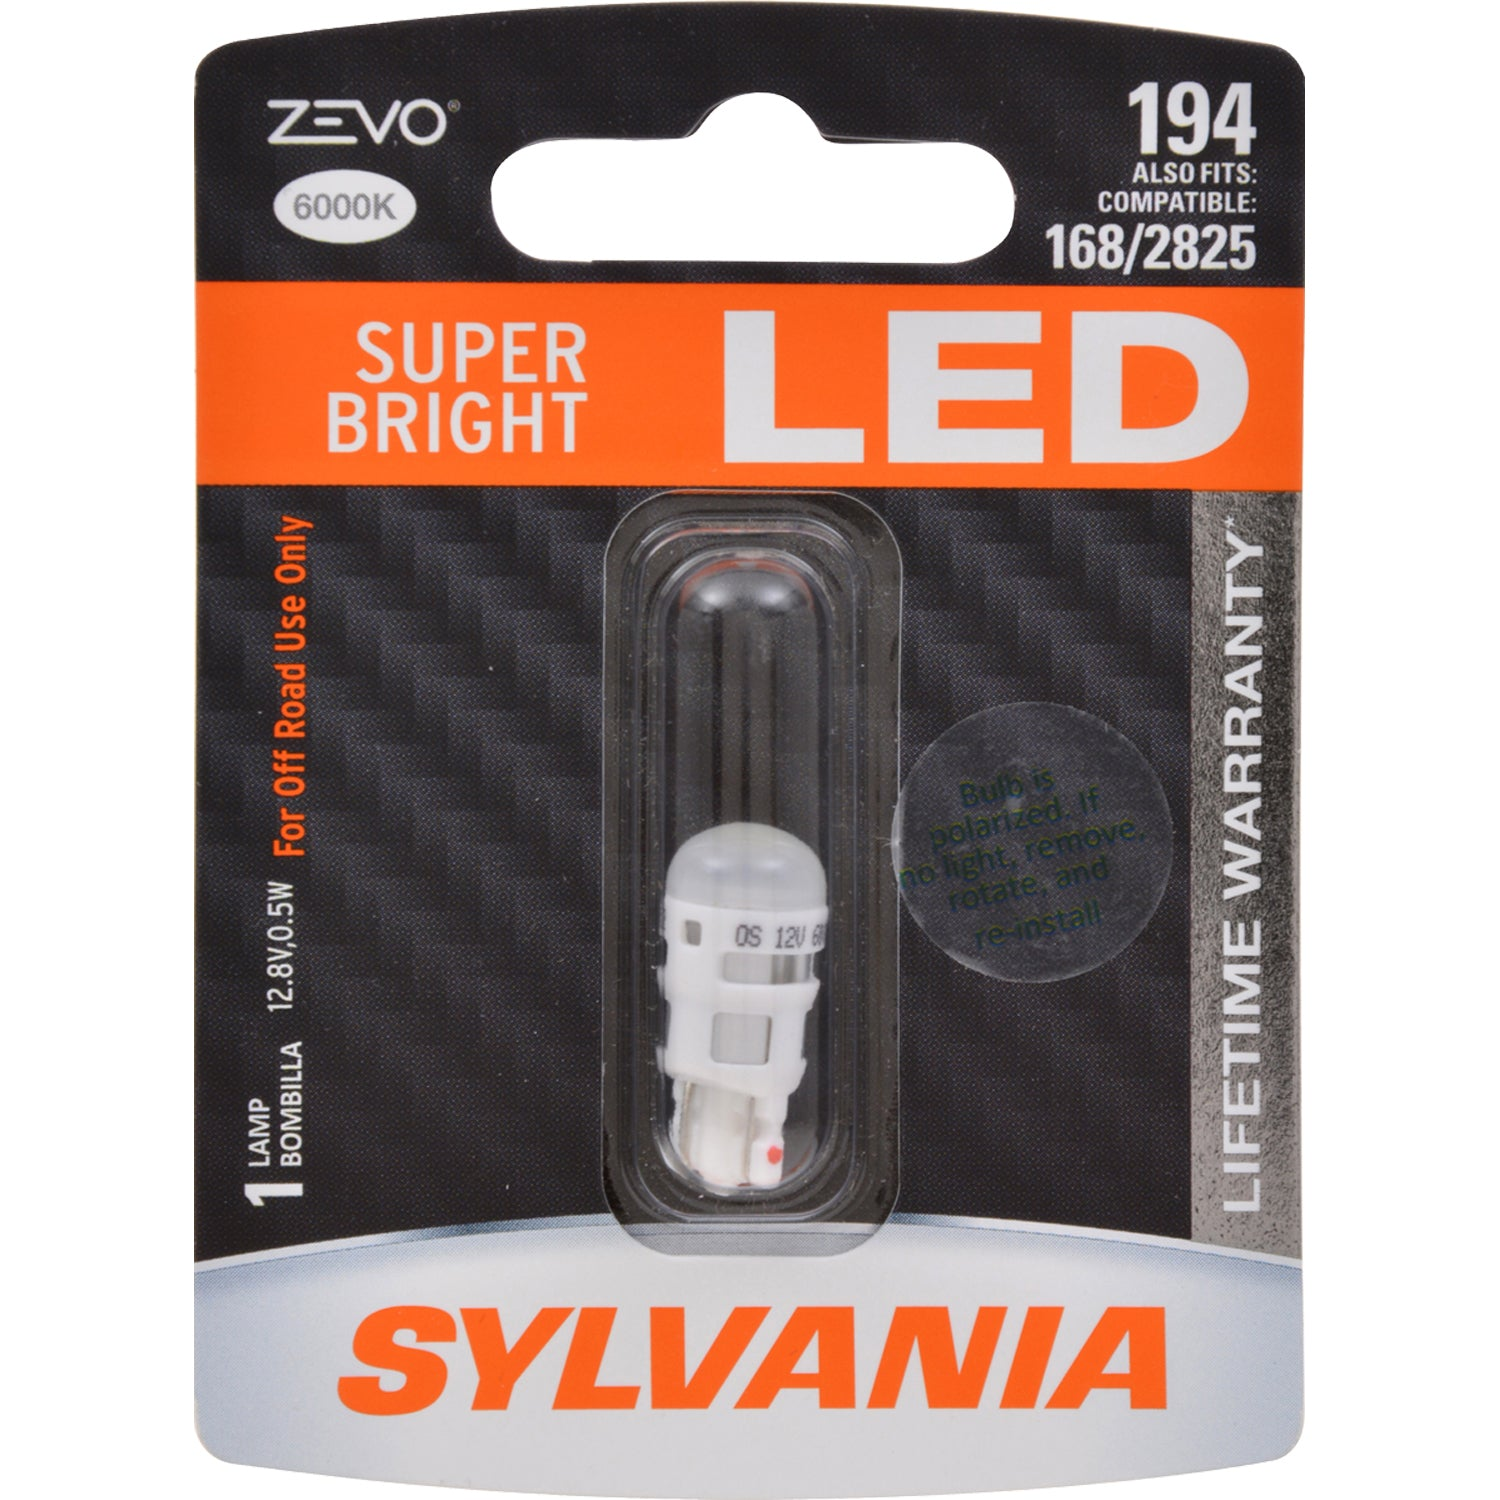 SYLVANIA 194 ZEVO LED W5W Super Bright 6000K Automotive Bulb also fits 168, 2825